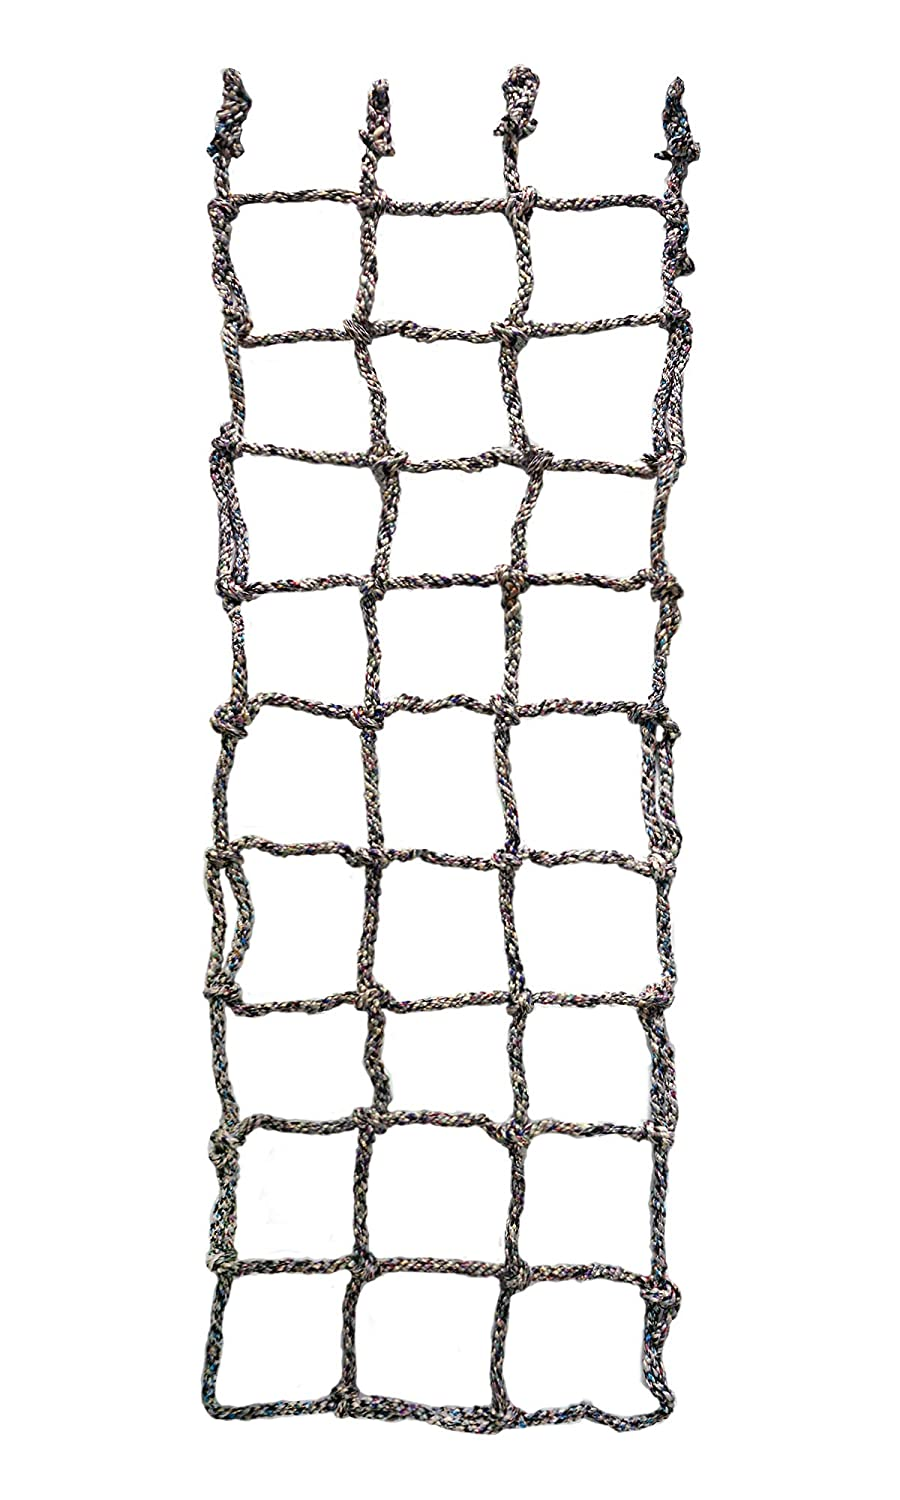 Aoneky Garden Climbing Frame Net for Kids Indoor and Outdoor Playing, Pet, Plant Support, Cargo (24'' x 70'') Cargo (24'' x 70'') 3681MC8330